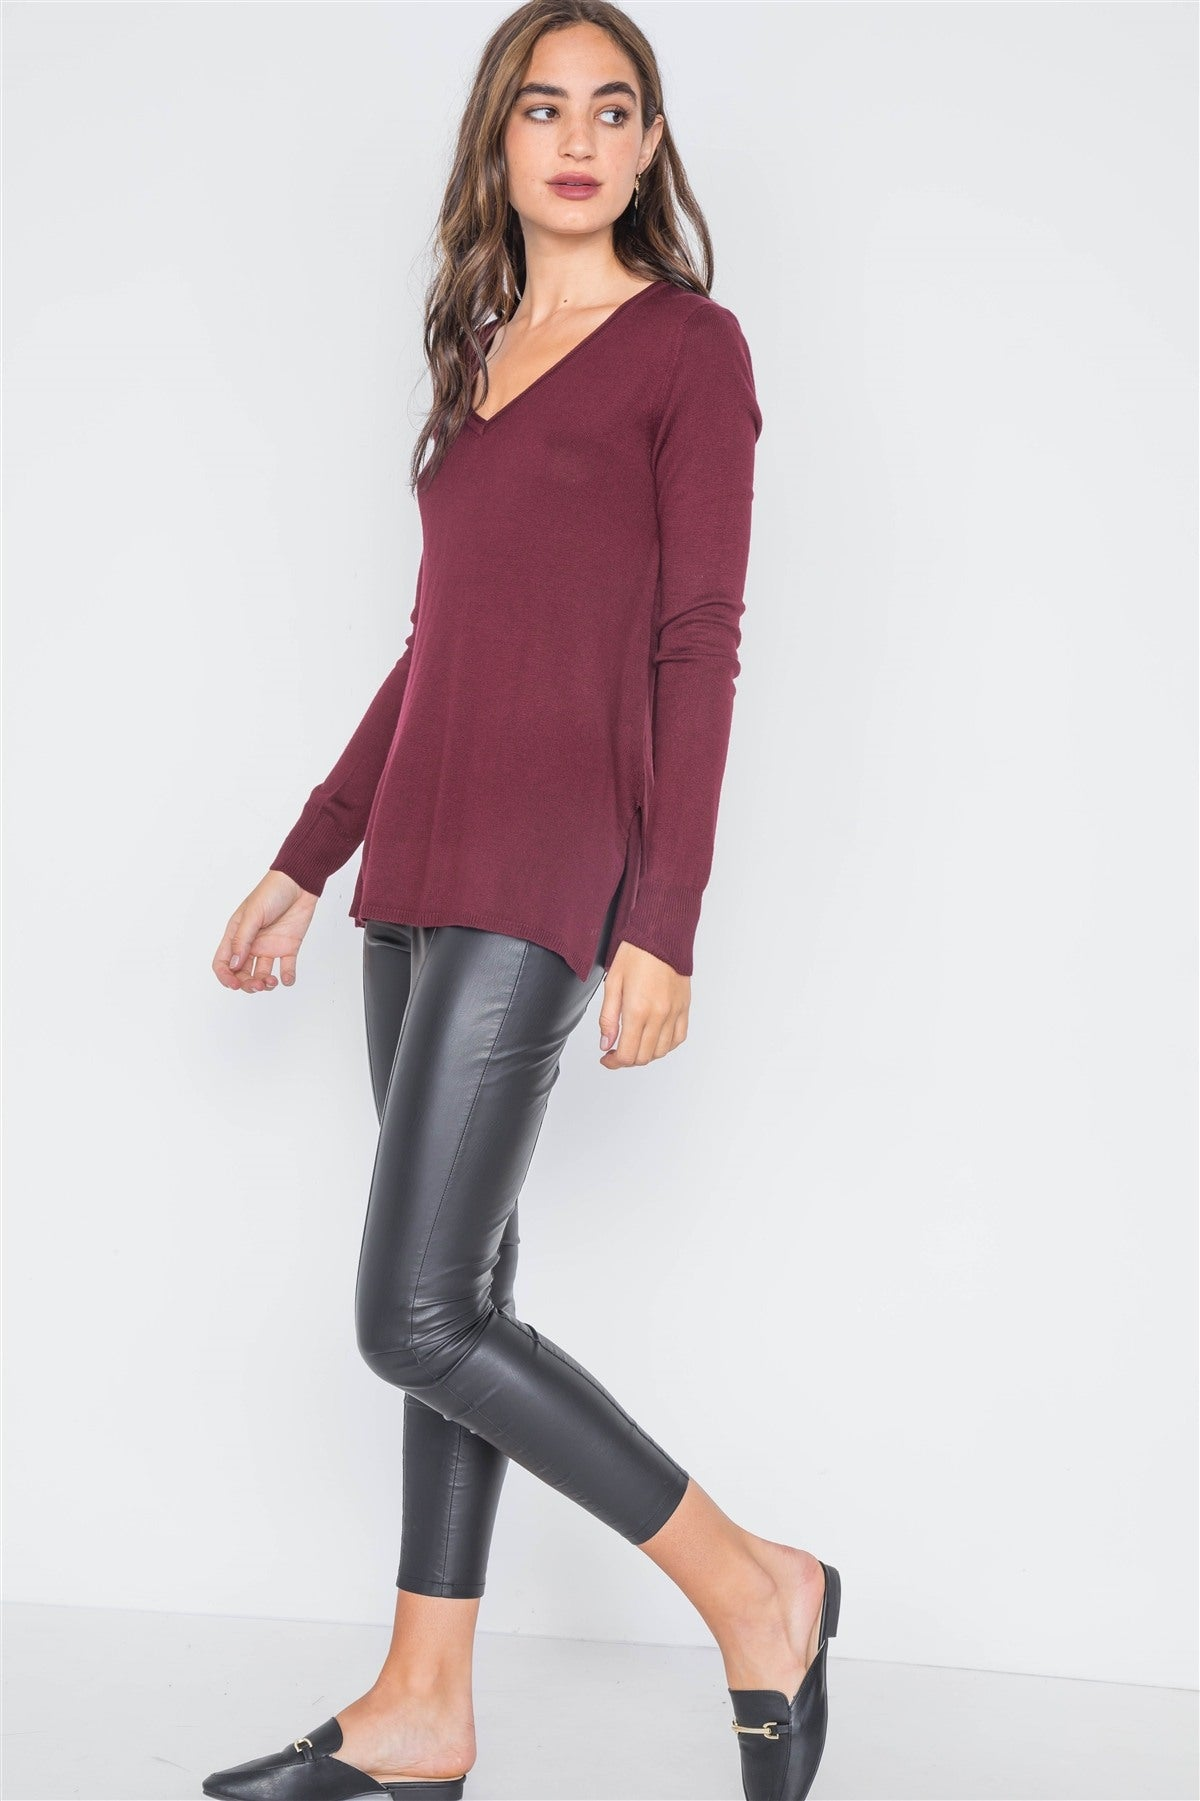 Burgundy Knit Casual V-neck Solid Sweater